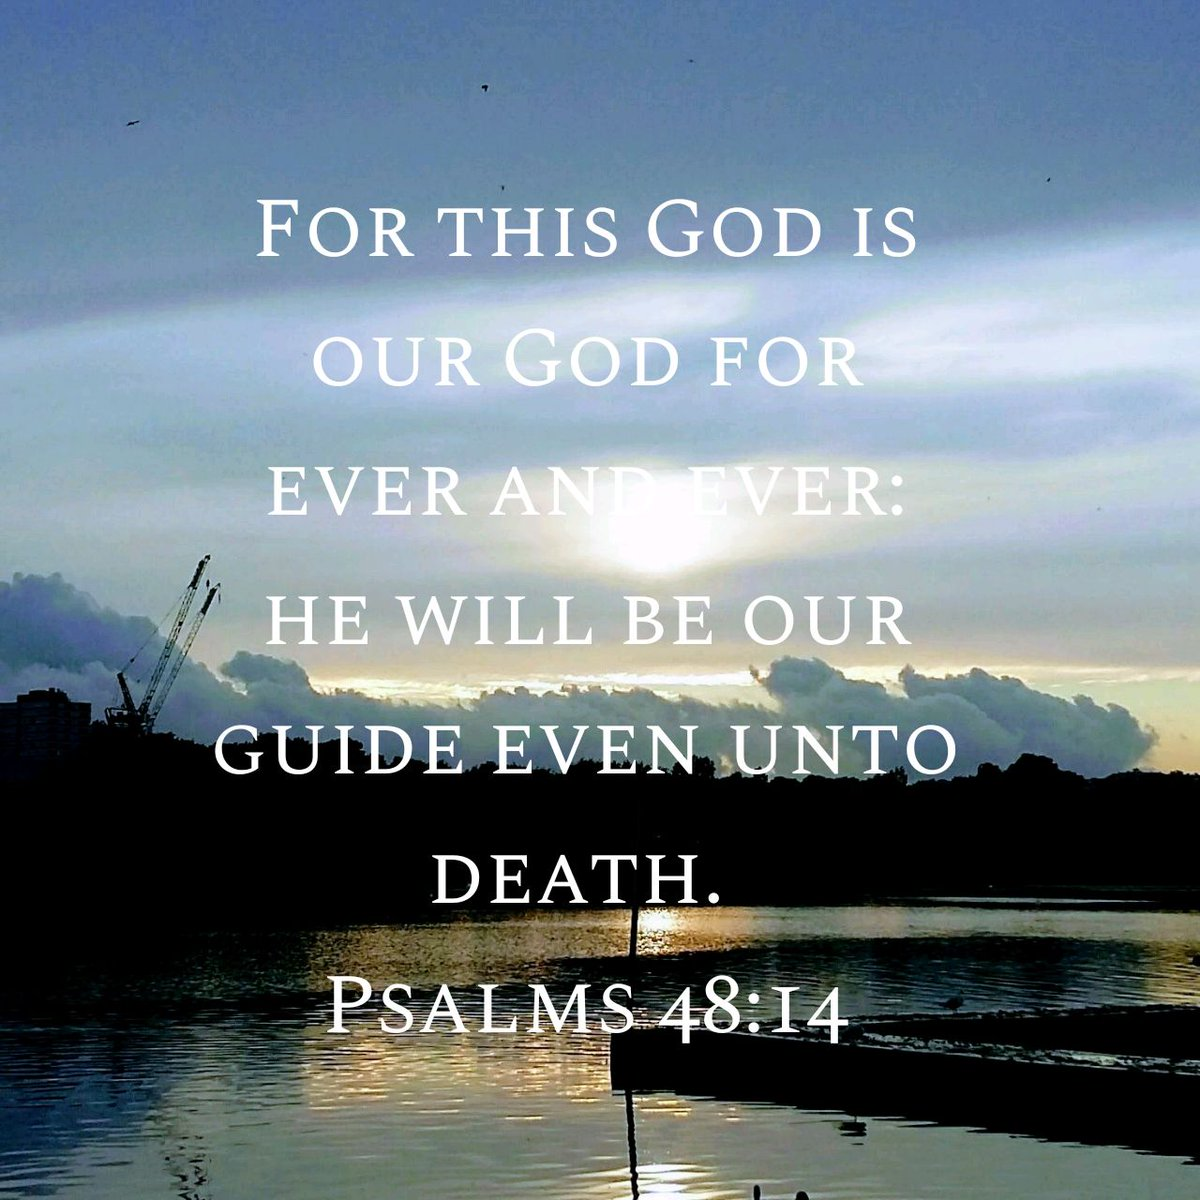 #PromisesofGod, Promises to #Preserve with #Protection #LifePrinciplesBible via @pstcharlesstan this God is our God for ever and ever: he will be our guide even unto death. Psalms 48:14 KJV https://bible.com/bible/1/psa.48.14.KJV…